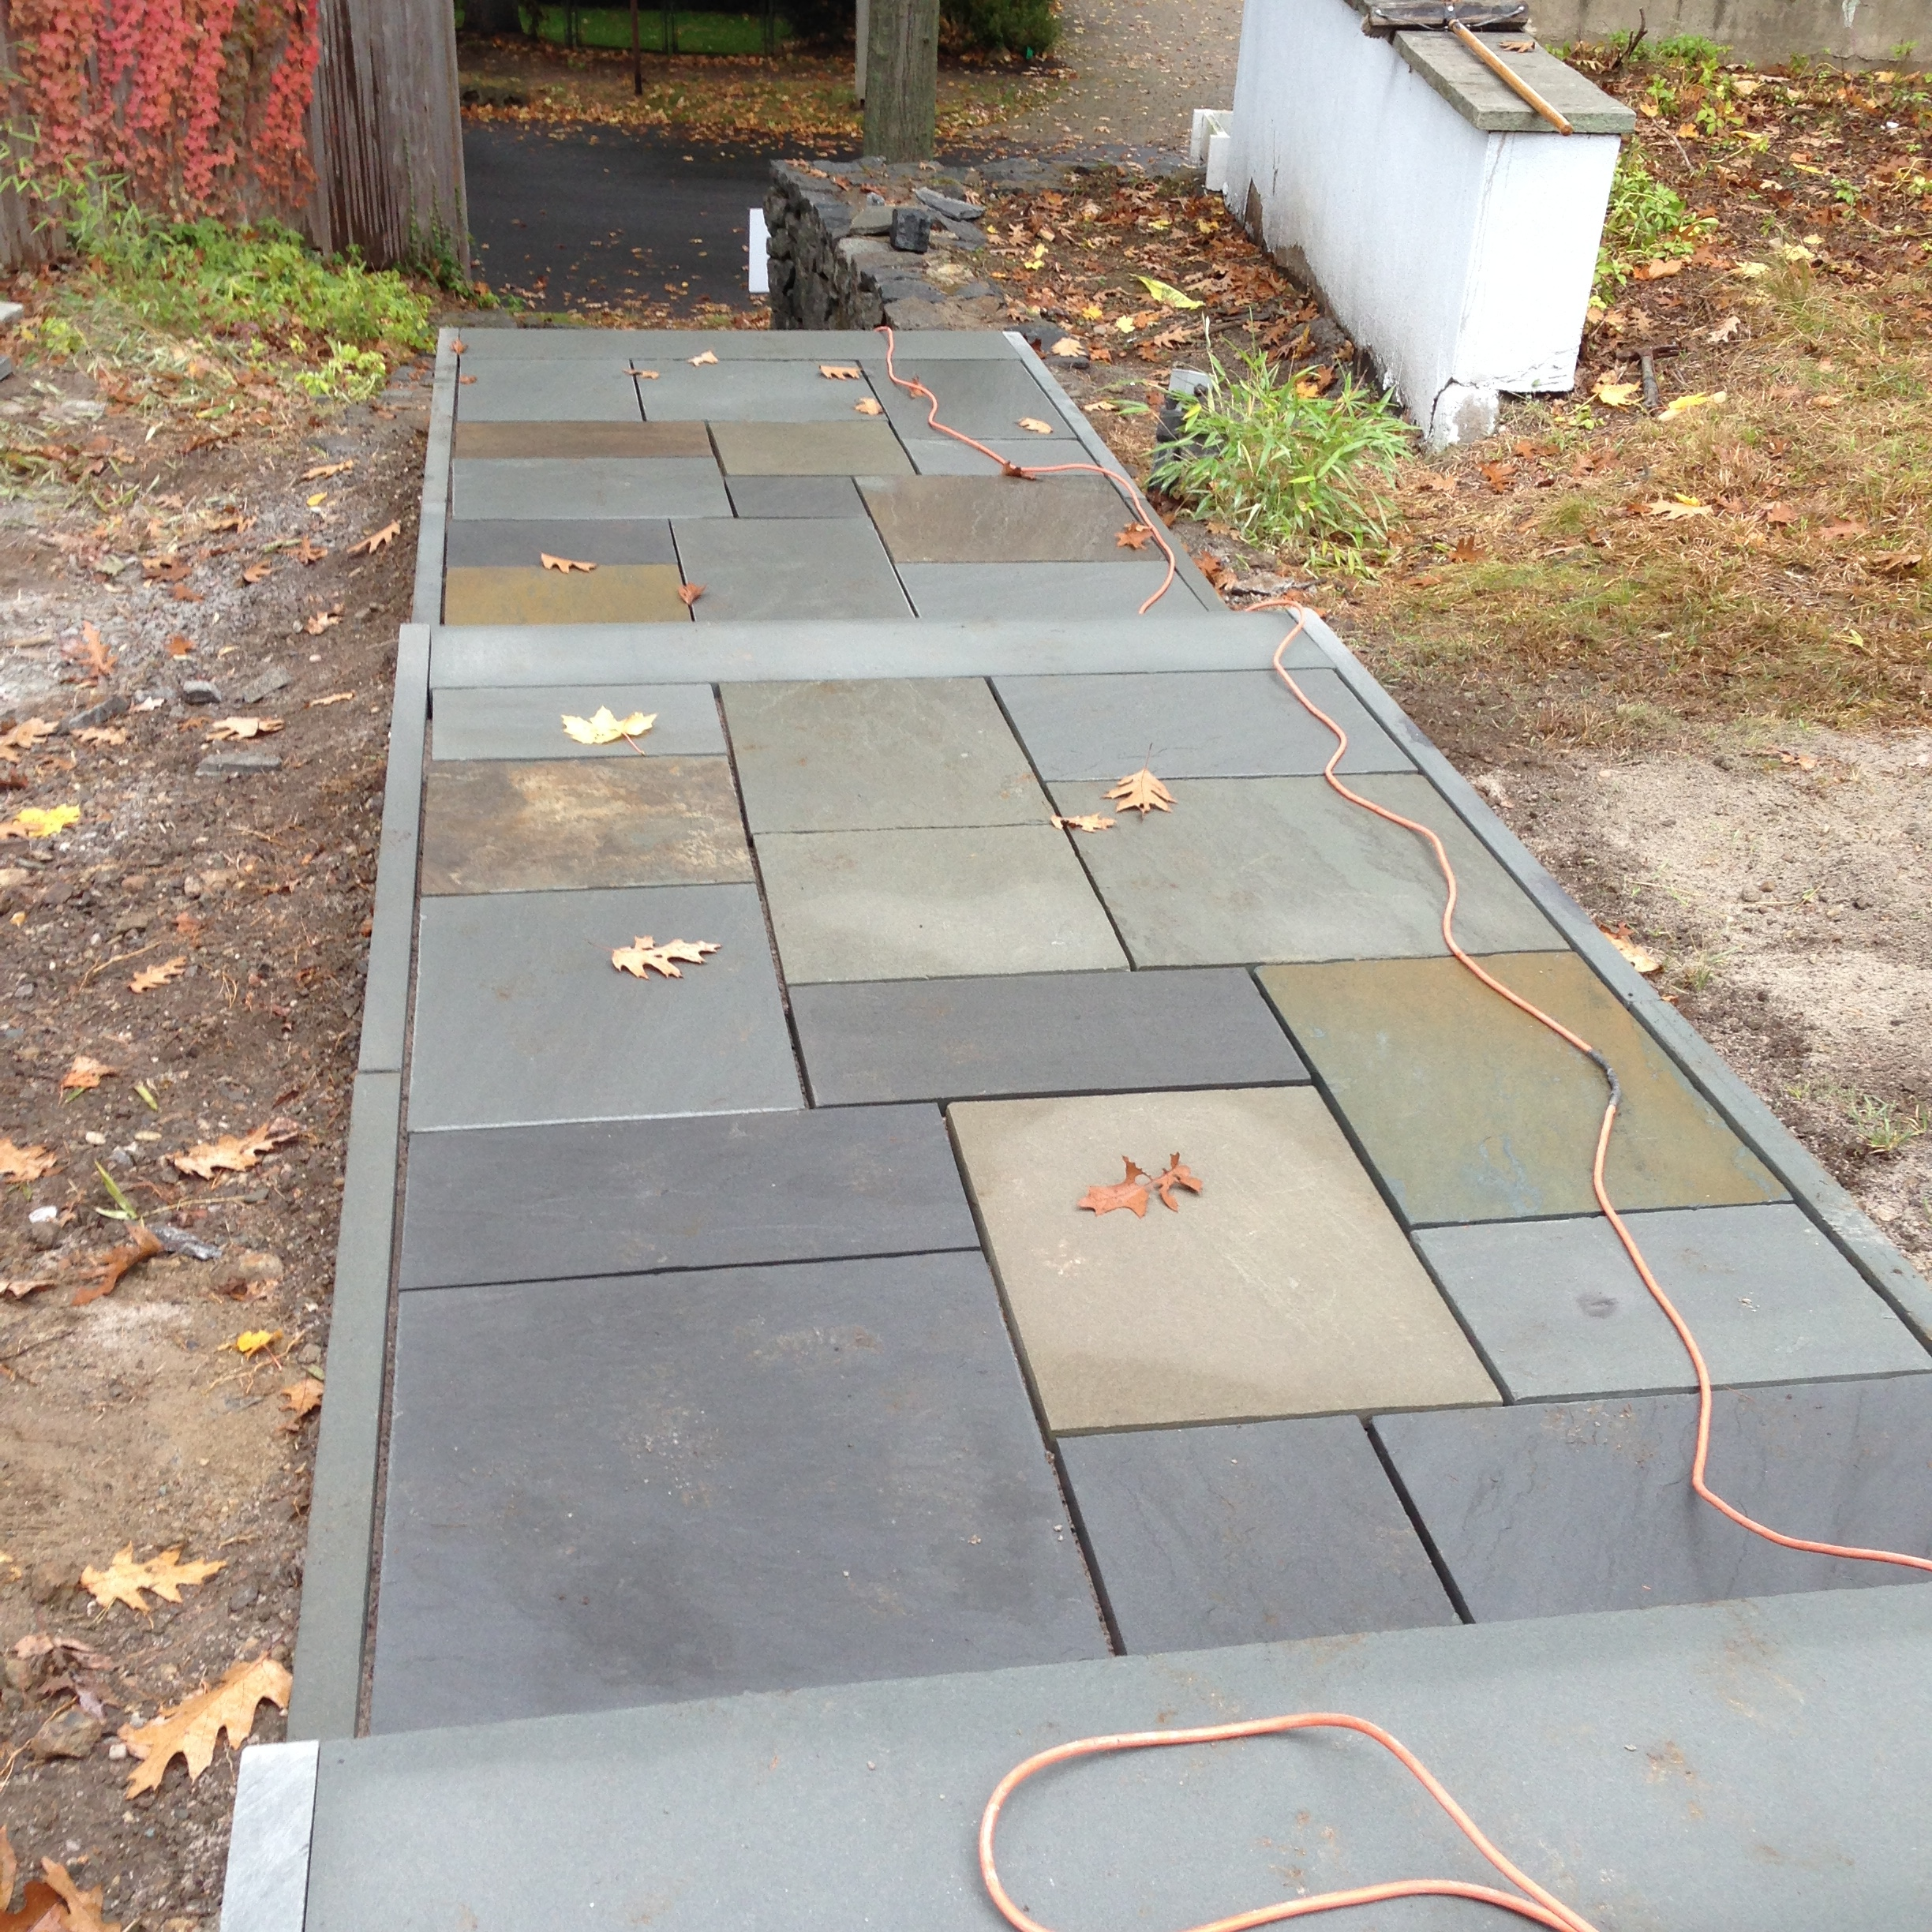 Polymeric sand will be added to seal the joints. MORE TO COME!